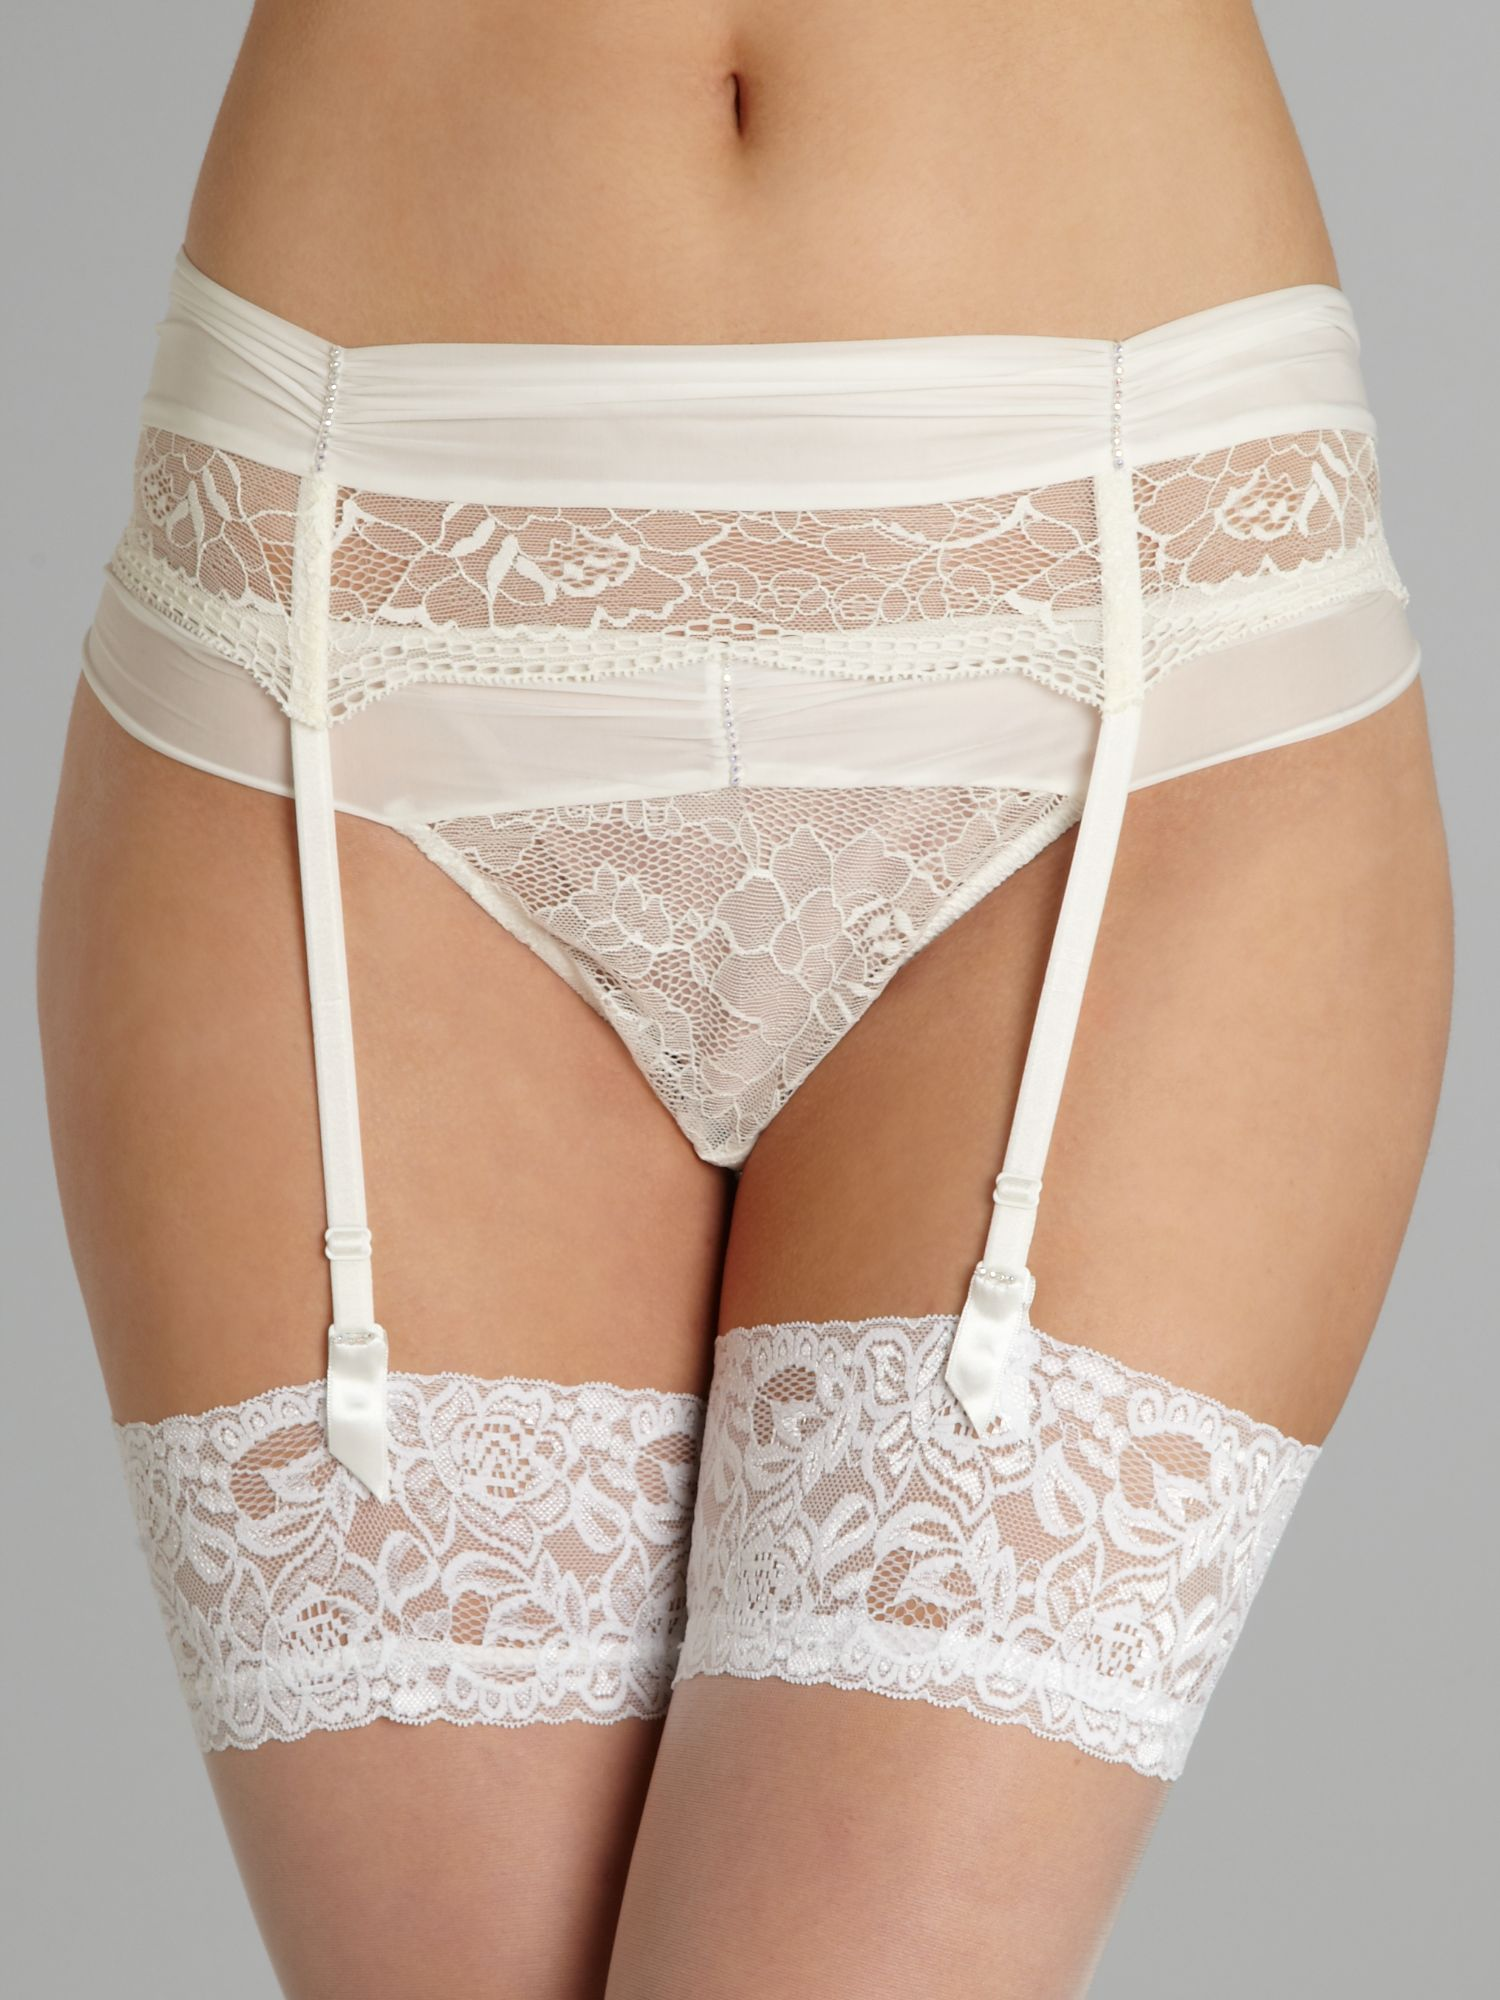 Crystal suspender belt